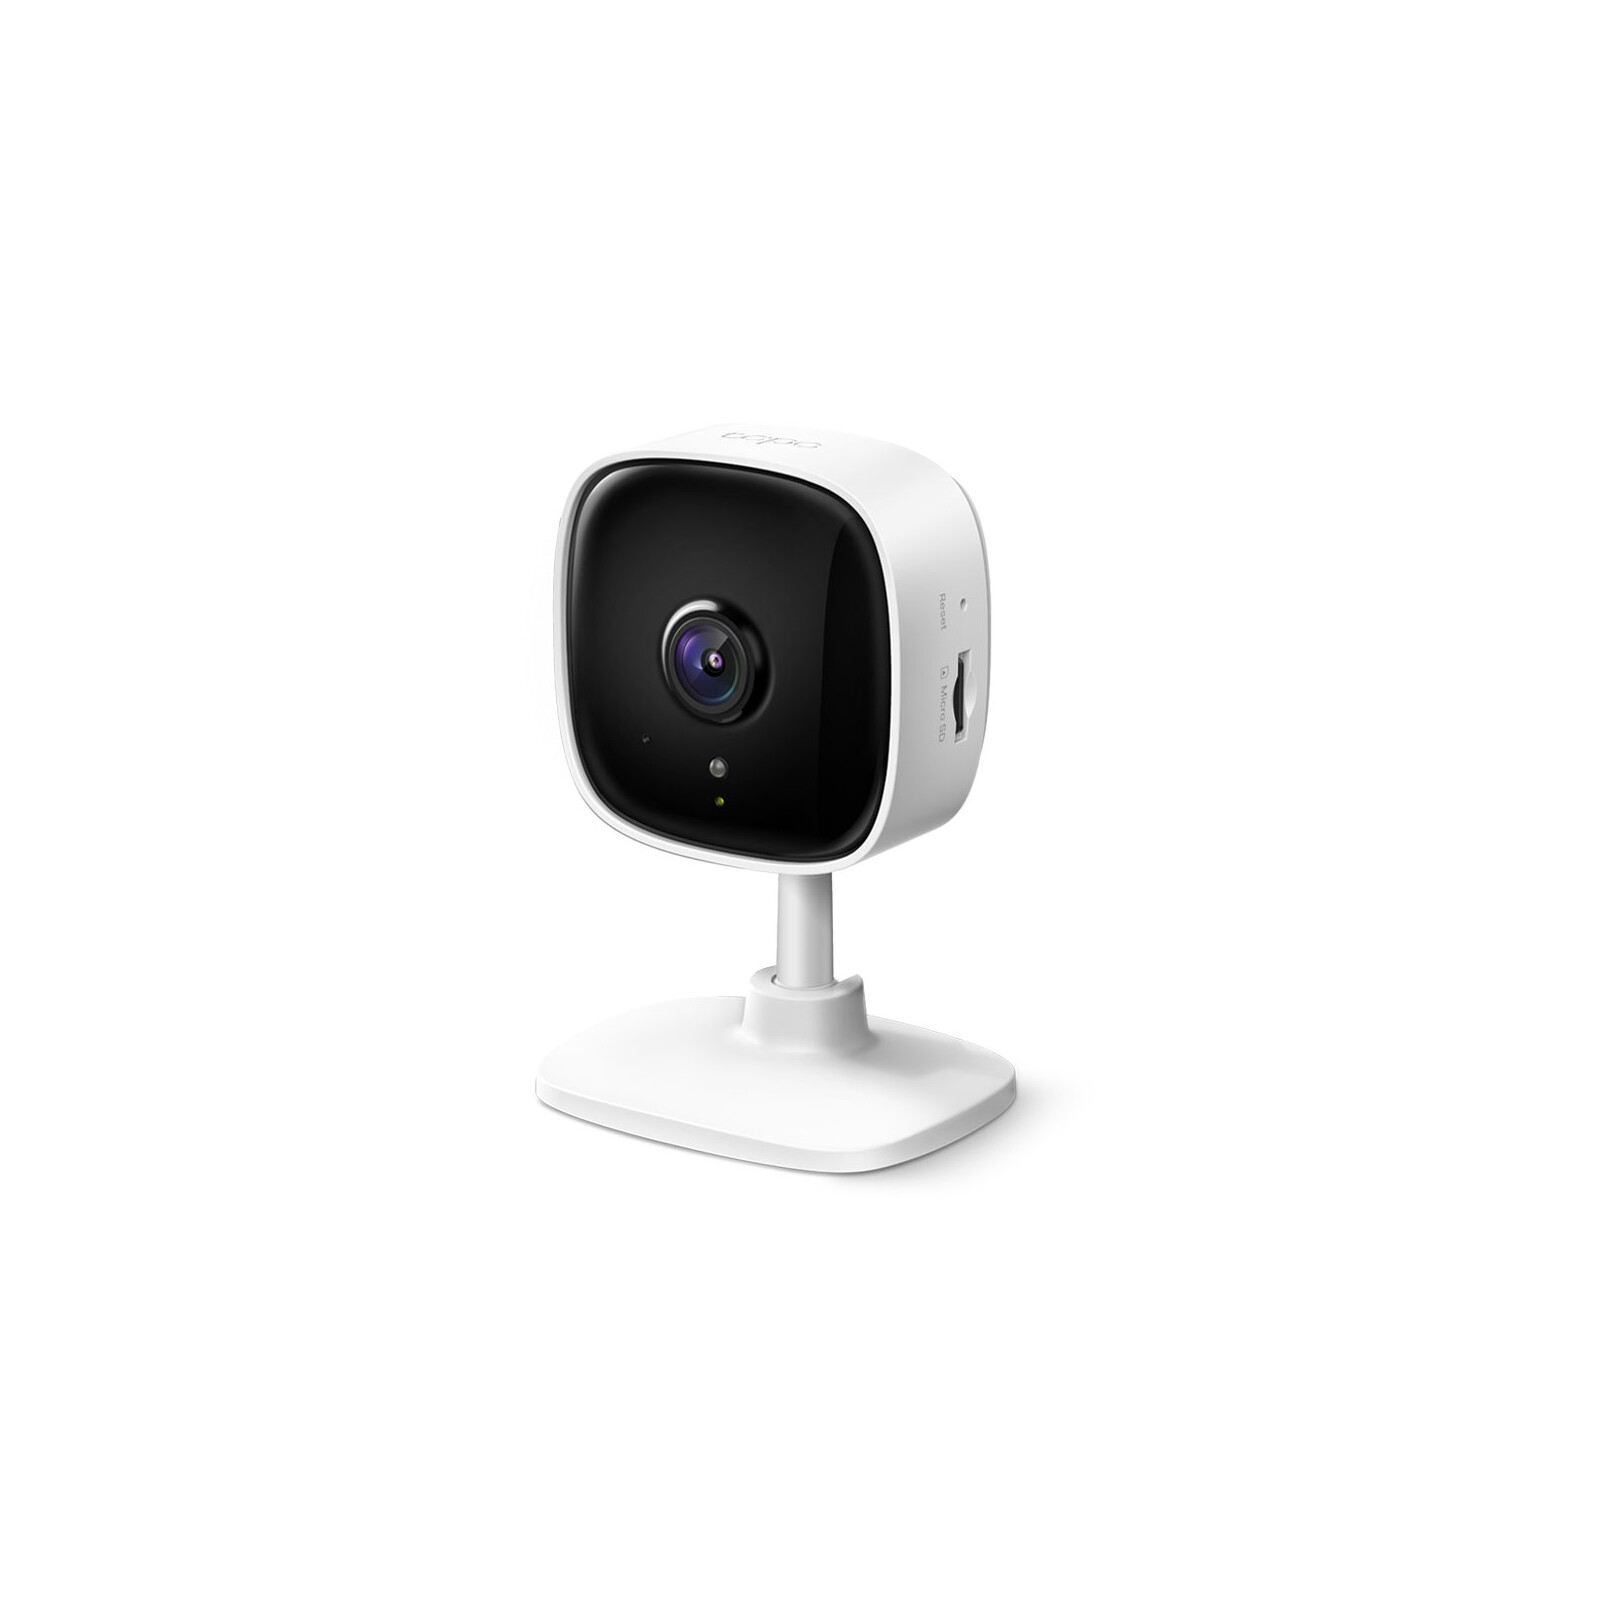 TP-Link Home Security WiFi Camera, Day/Night vie